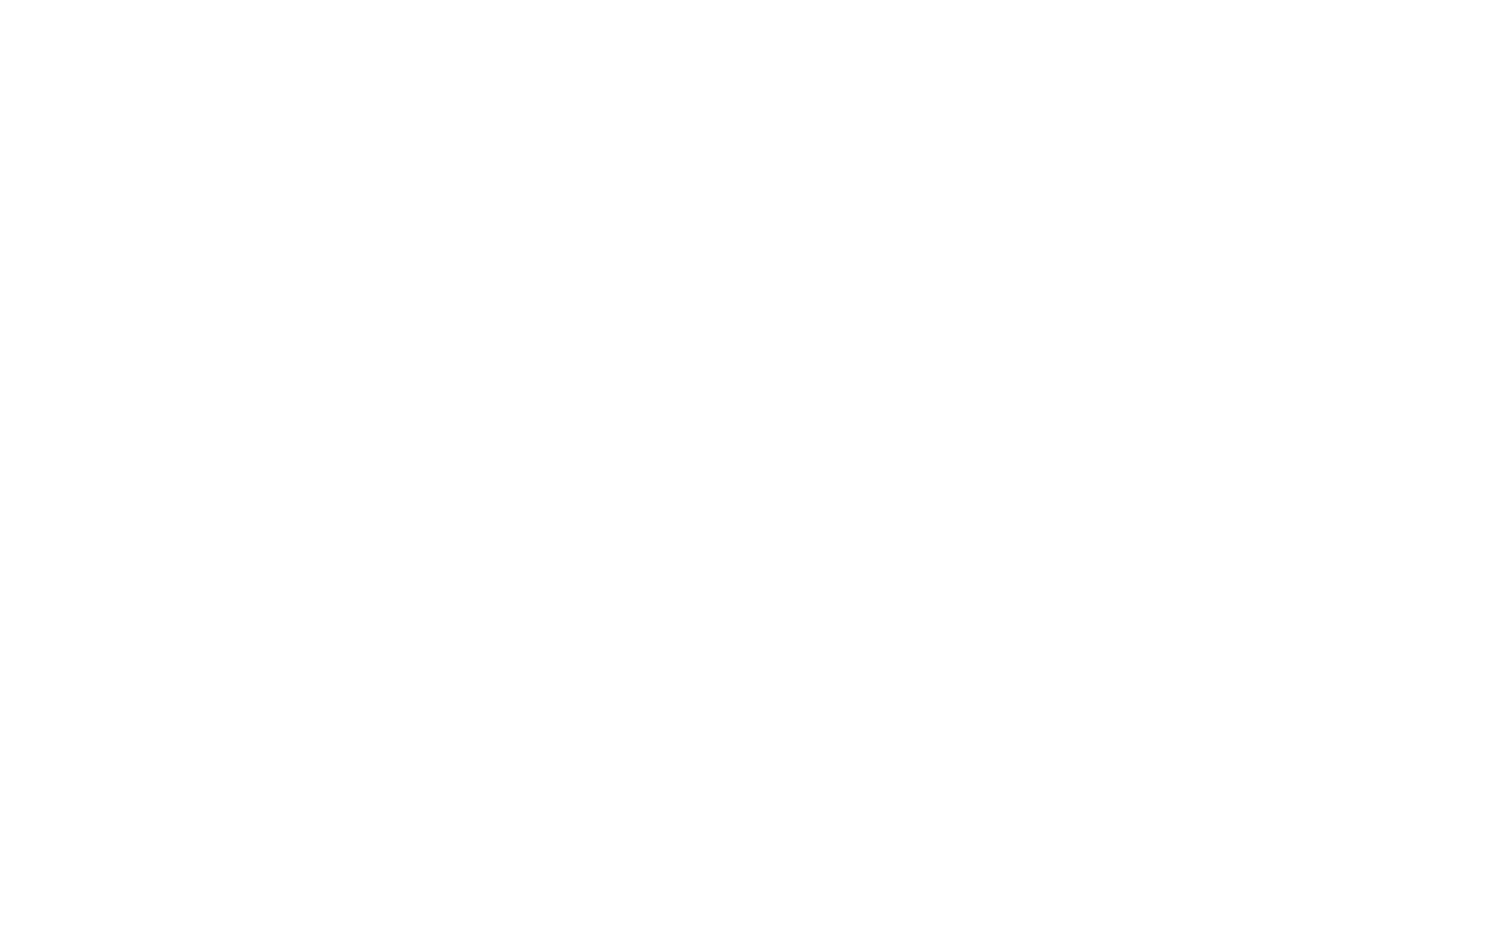 The Berko Loop